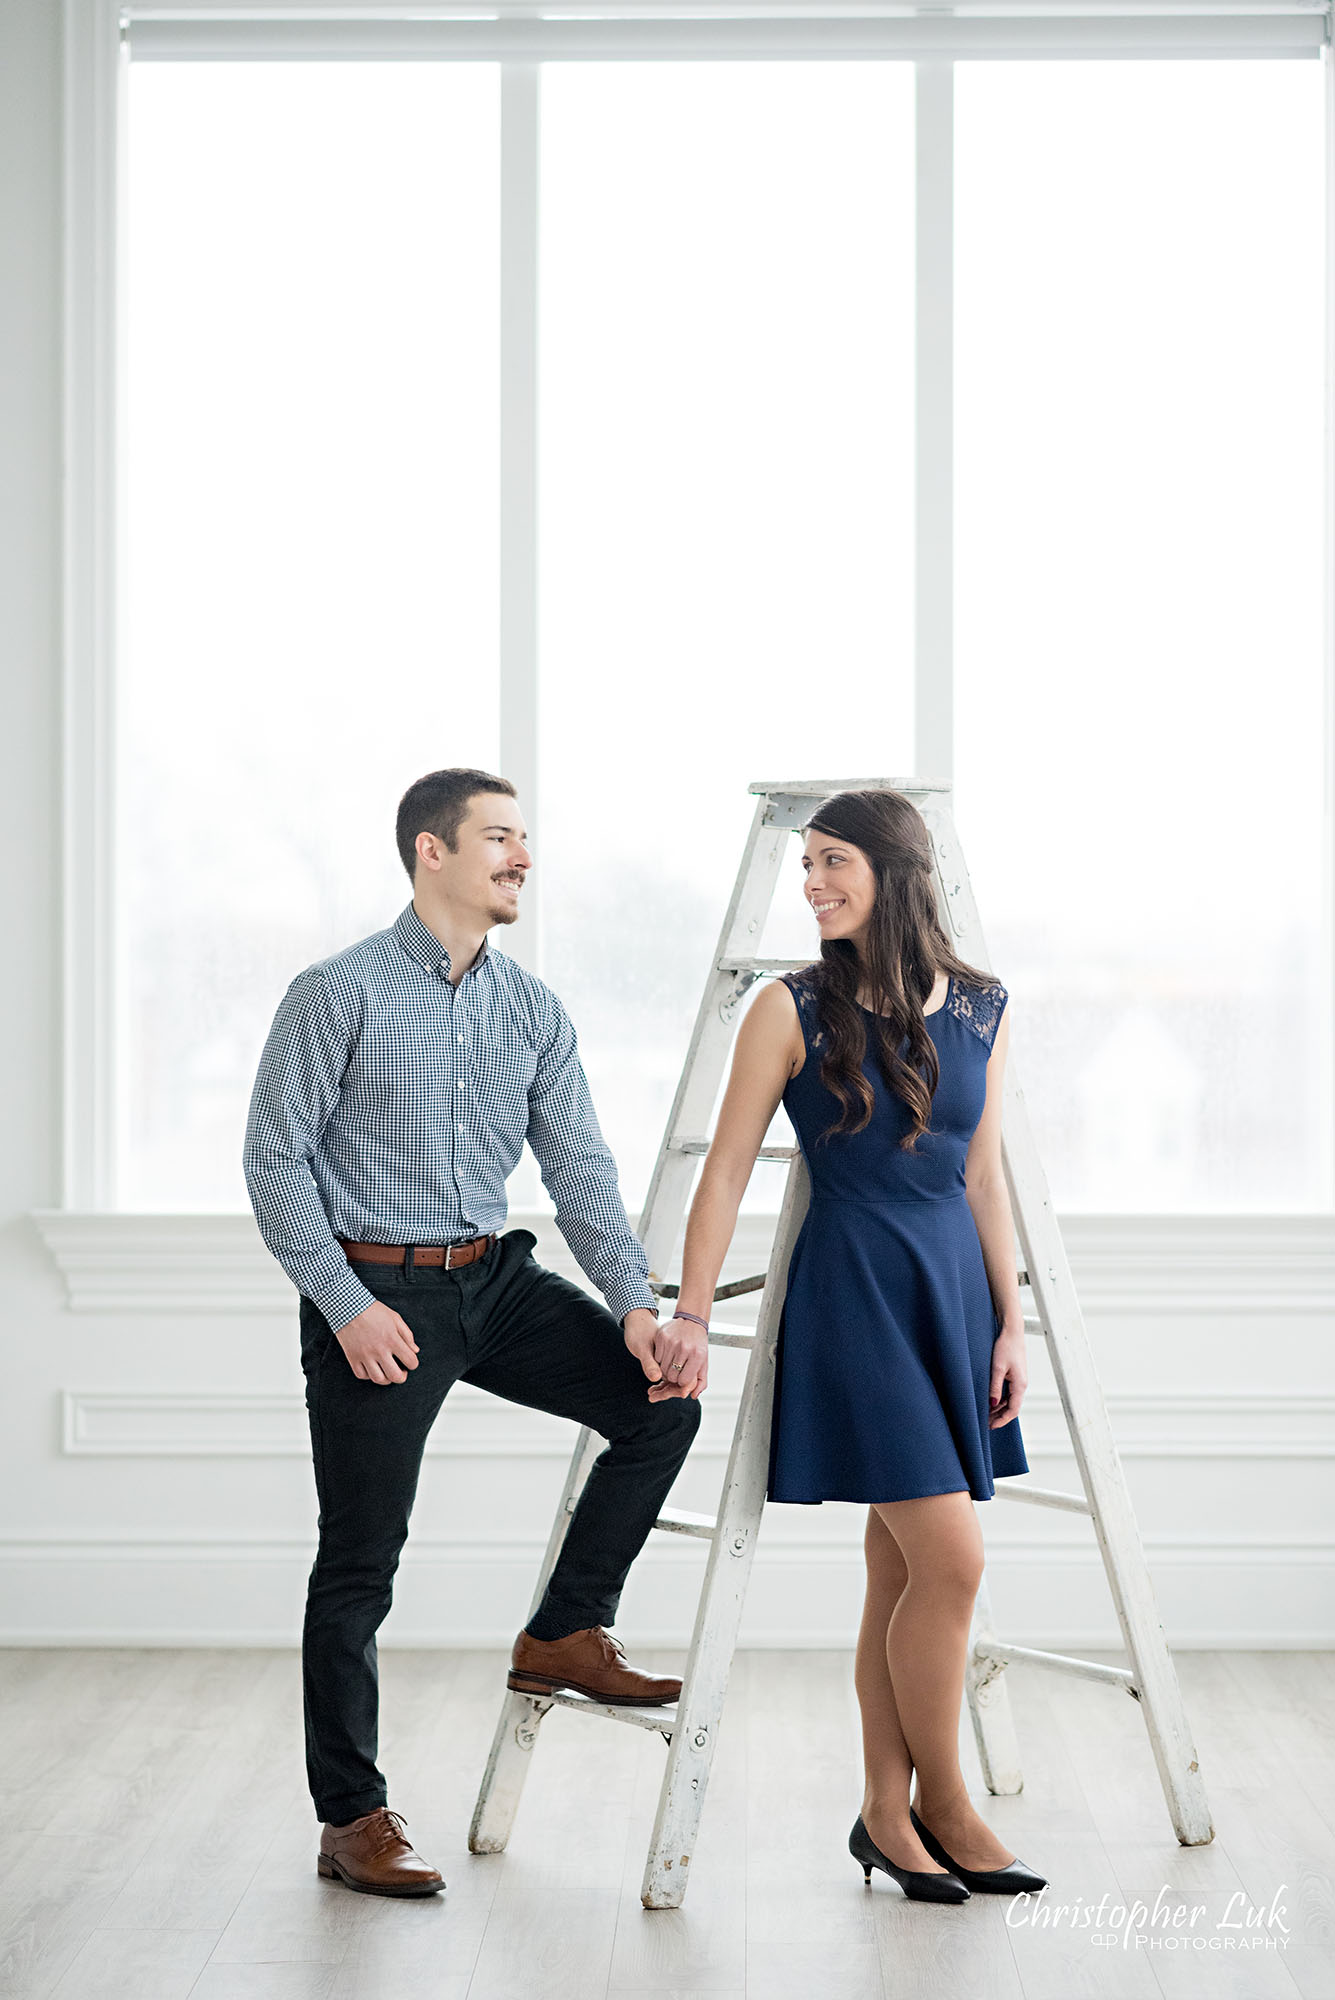 Christopher Luk Toronto Wedding Photographer Mint Room Studios Conservatory Engagement Session Winter Indoor Natural Light Candid Photojournalistic Bride Groom Vintage Rustic Ladder Window Holding Hands